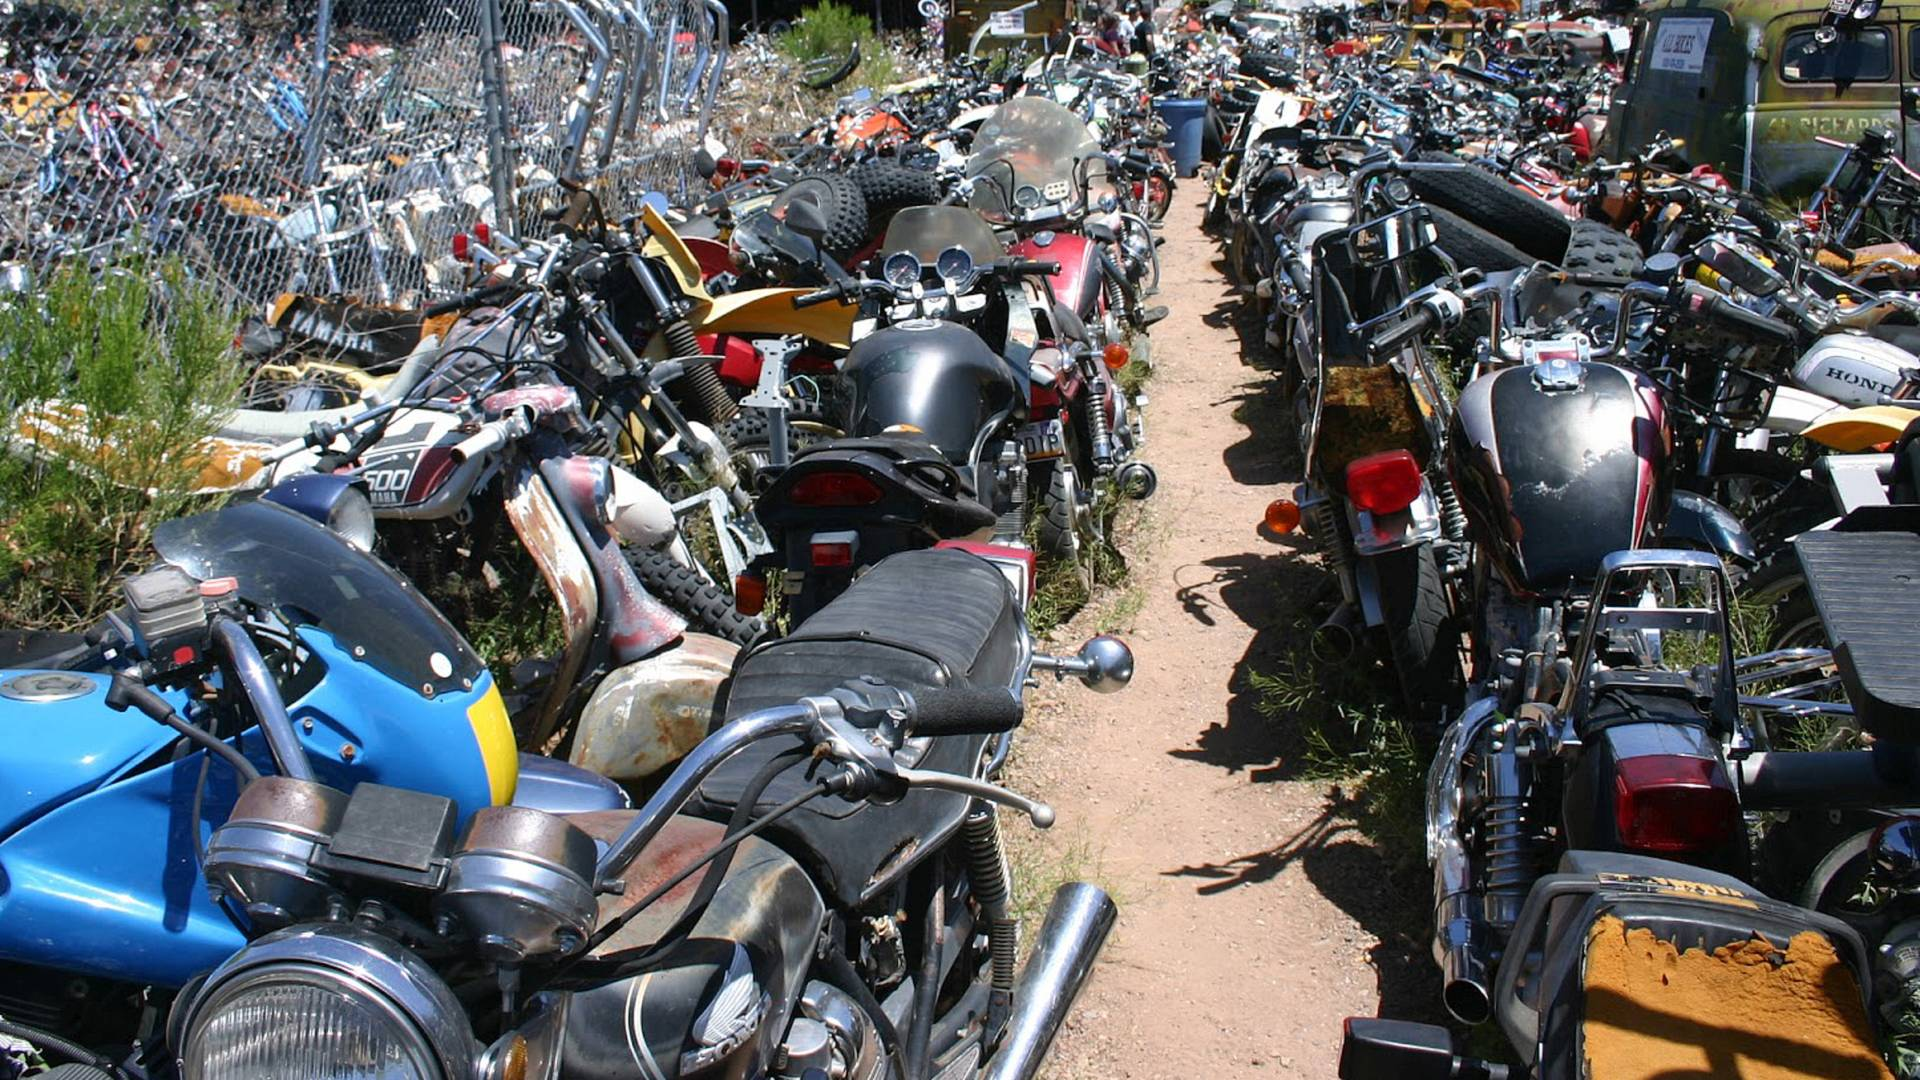 How To Prevent Your Motorcycle Being Stolen